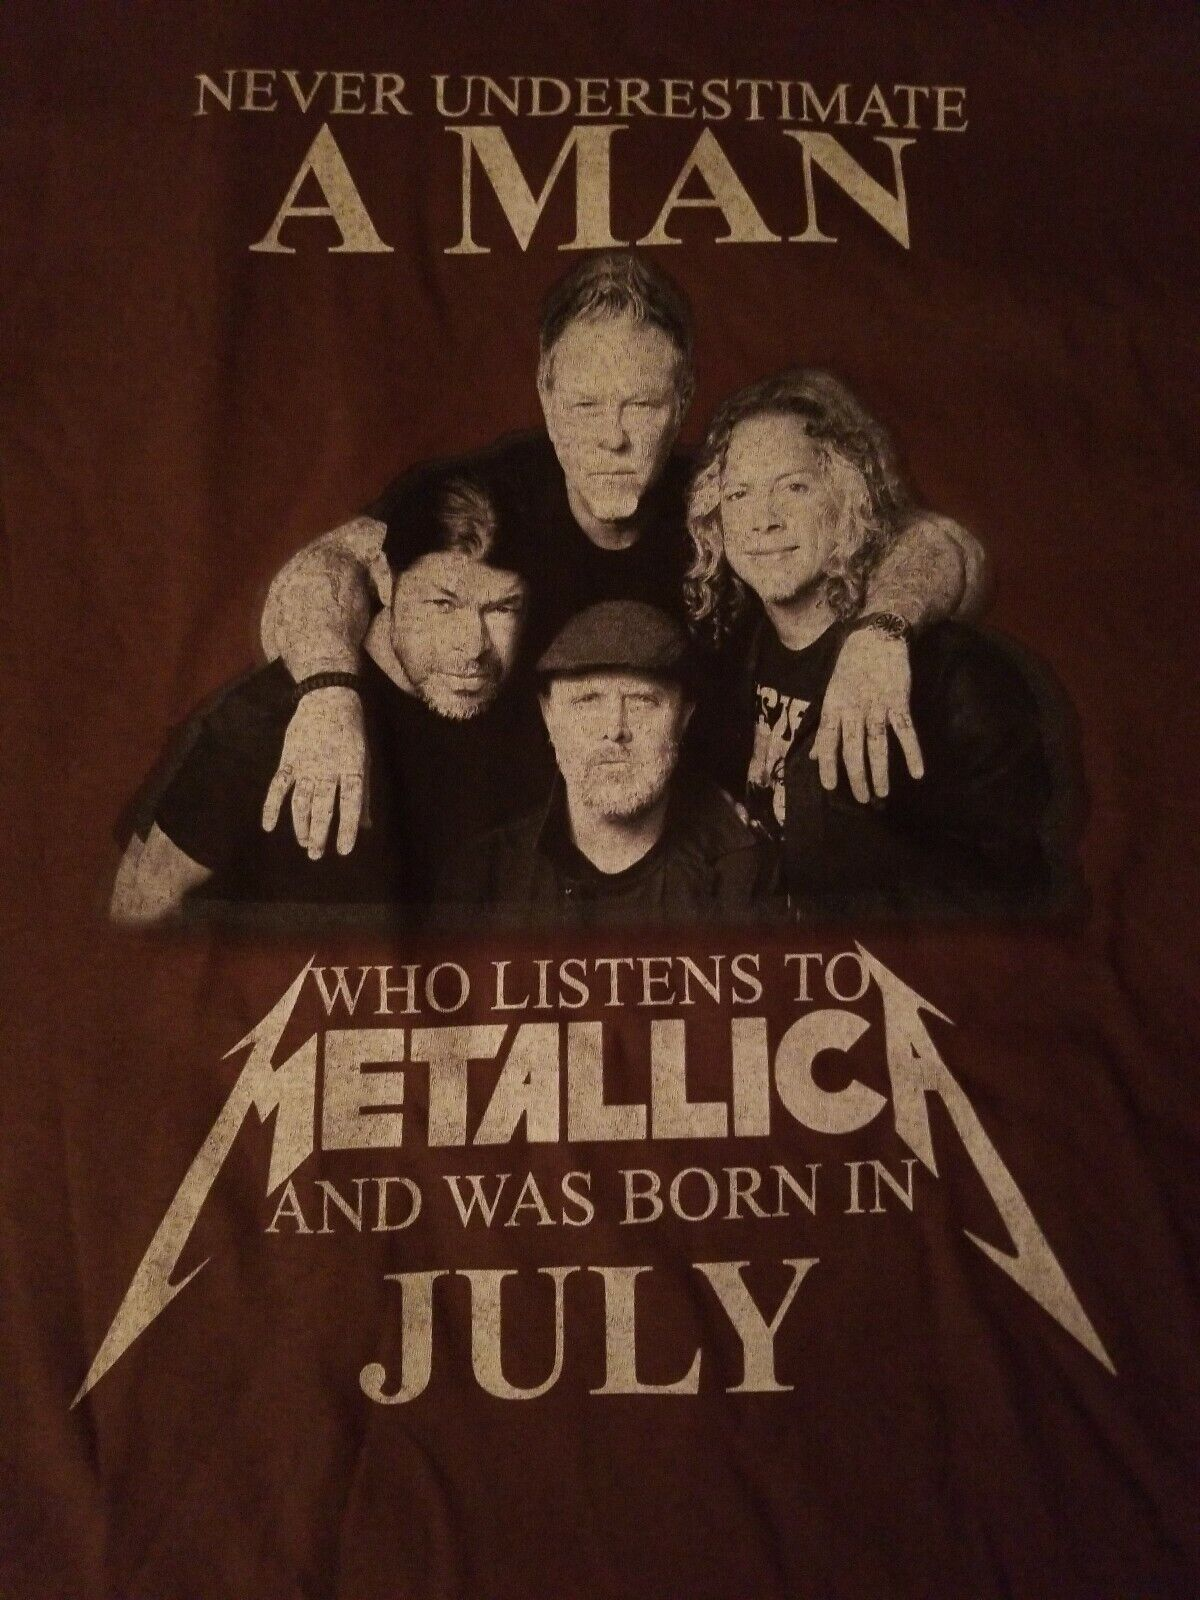 Never Underestimate MAN Who Listens to Metallica … - image 1